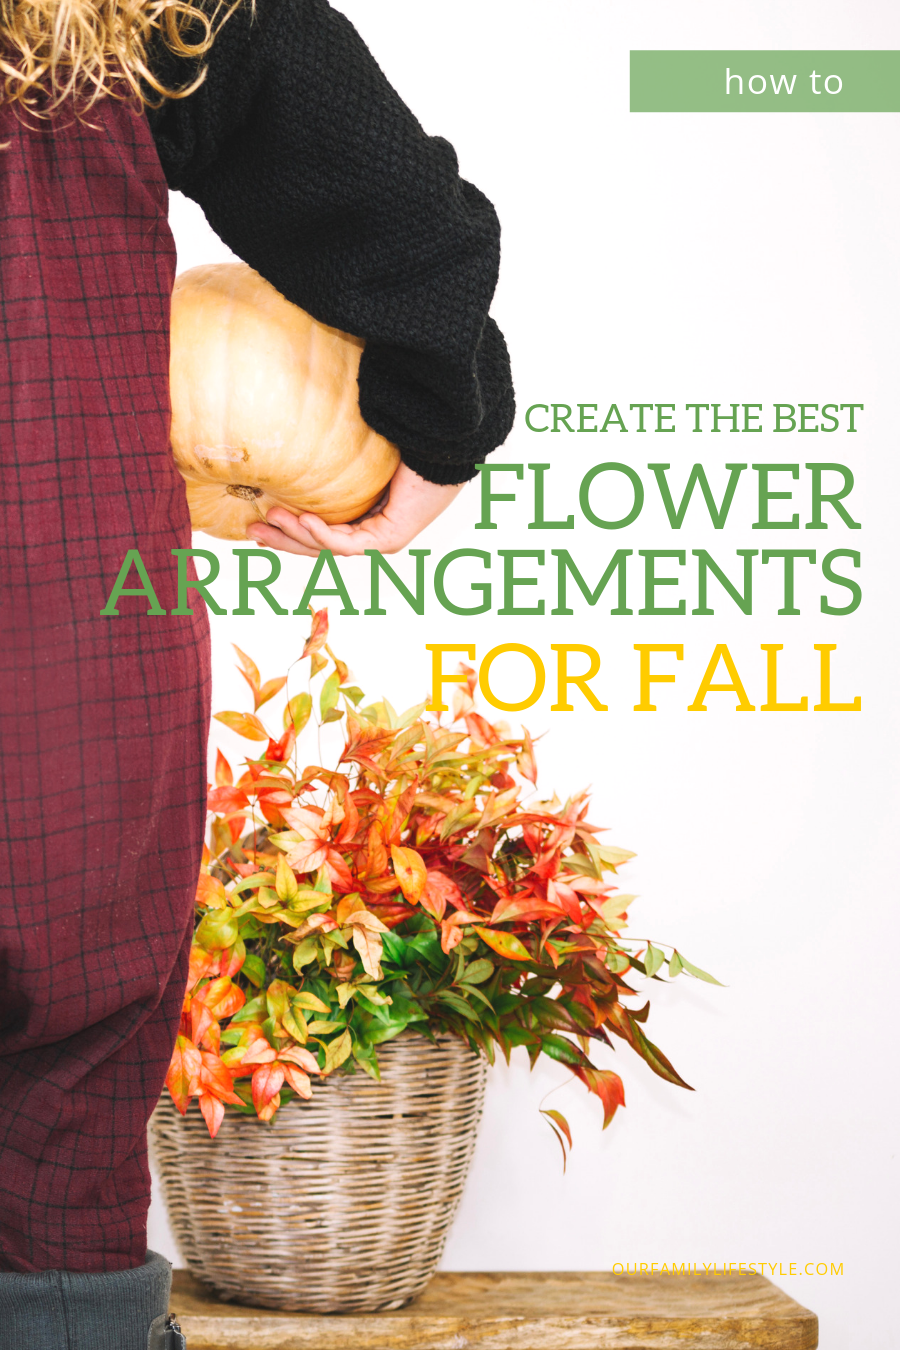 How to Create the Best Flower Arrangements for Fall